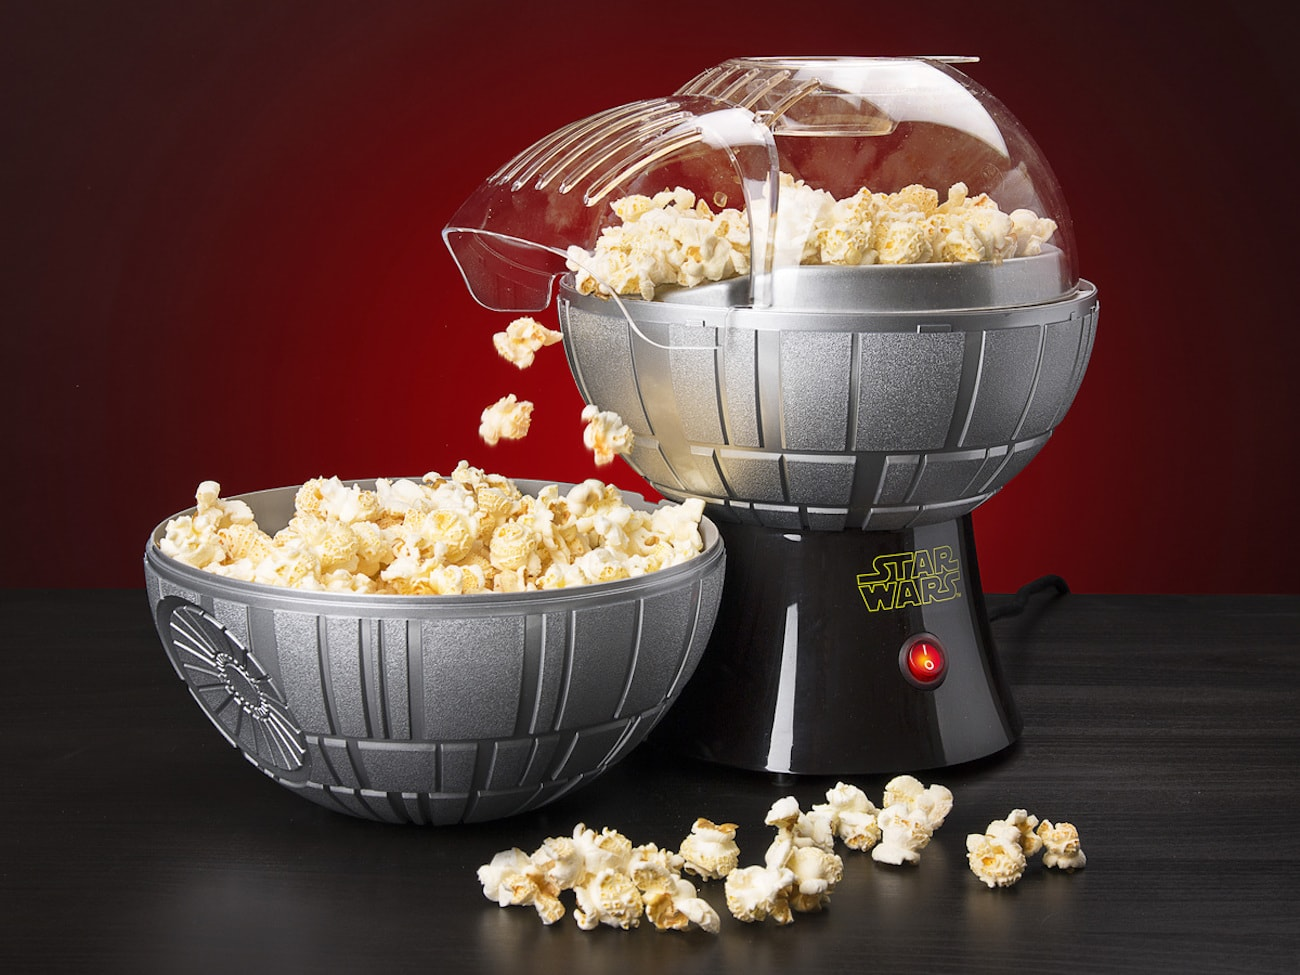 Star+Wars+Death+Star+Popcorn+Maker